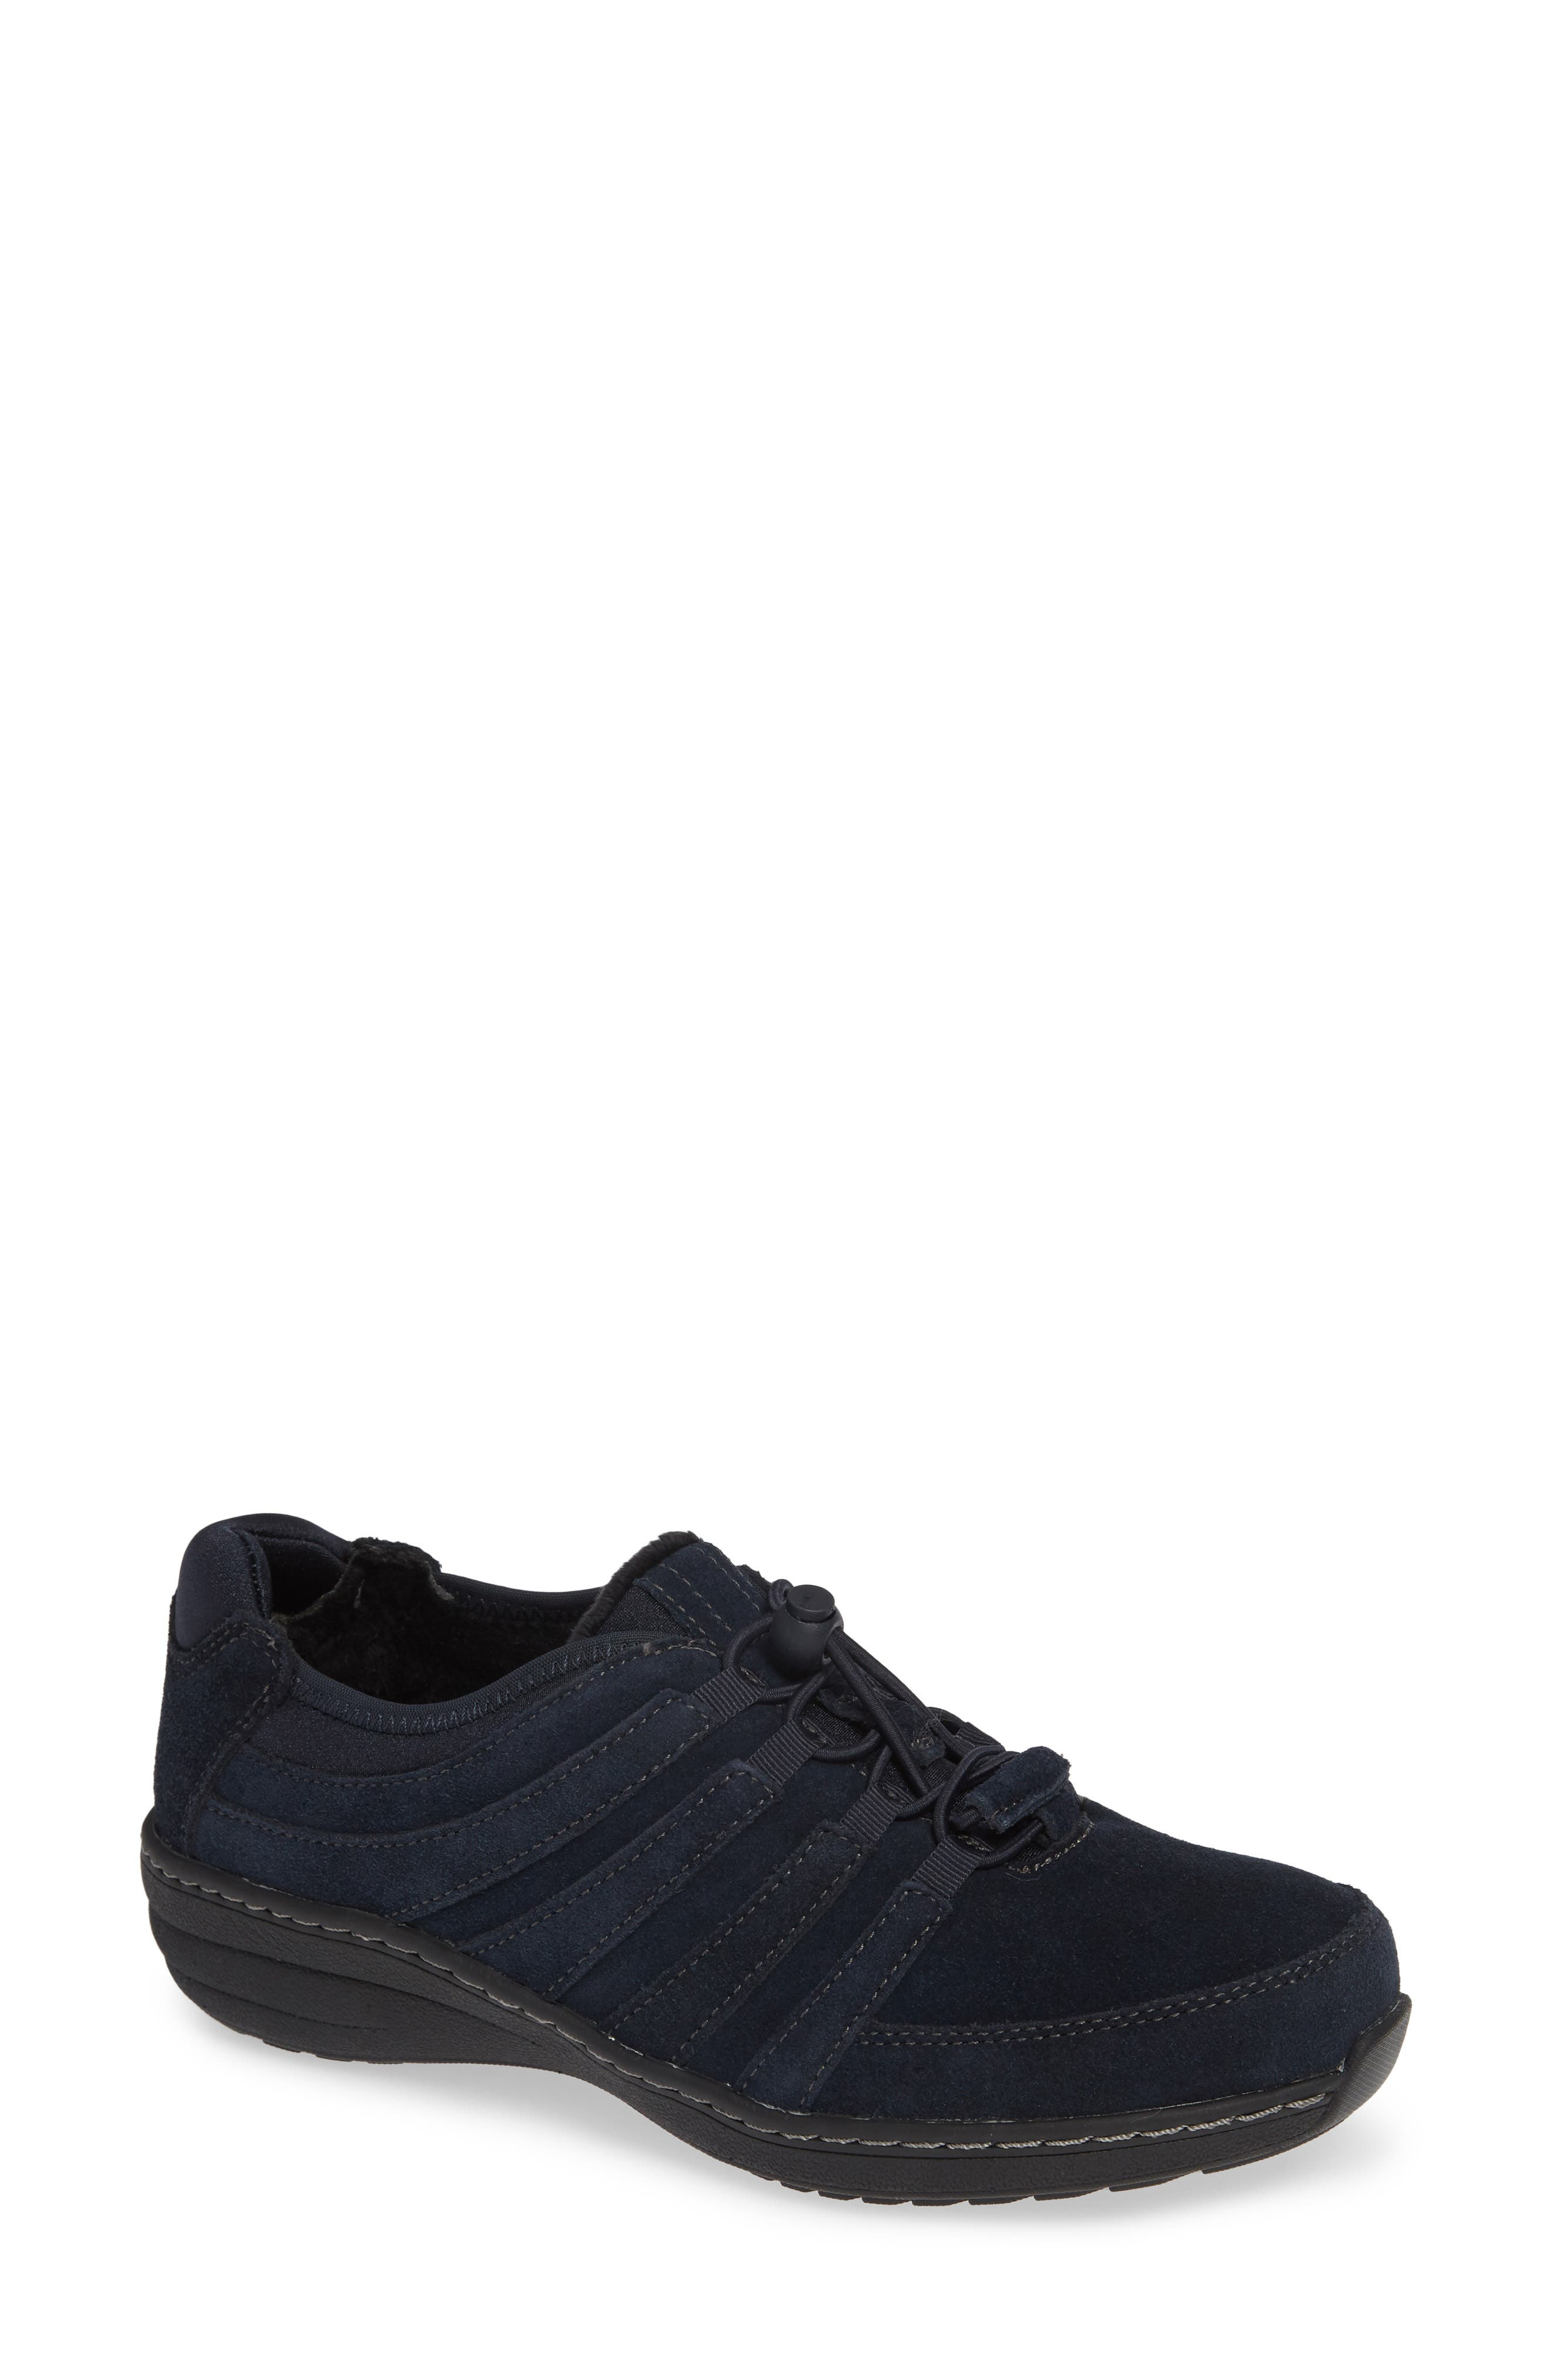 AETREX, Laney Sneaker, Main thumbnail 1, color, NAVY FABRIC